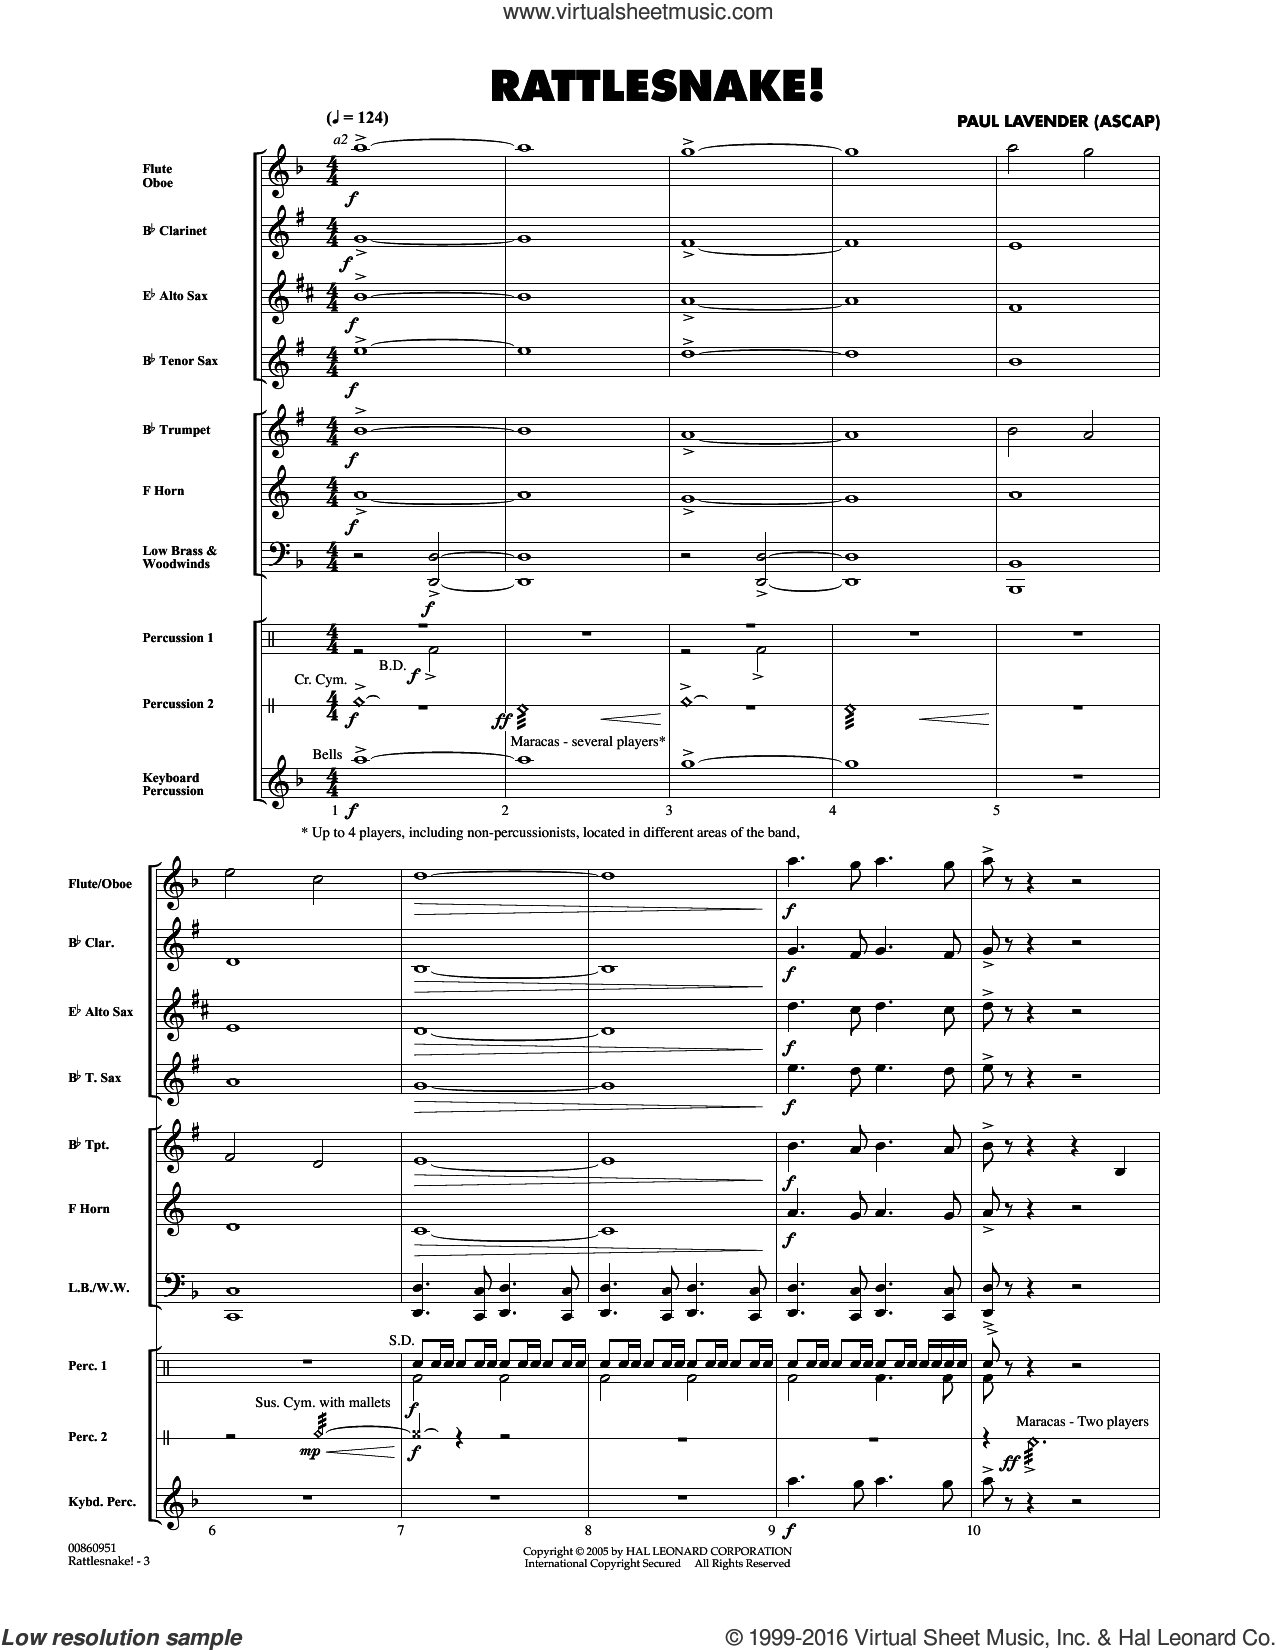 Rattlesnake! (COMPLETE) sheet music for concert band by Paul Lavender